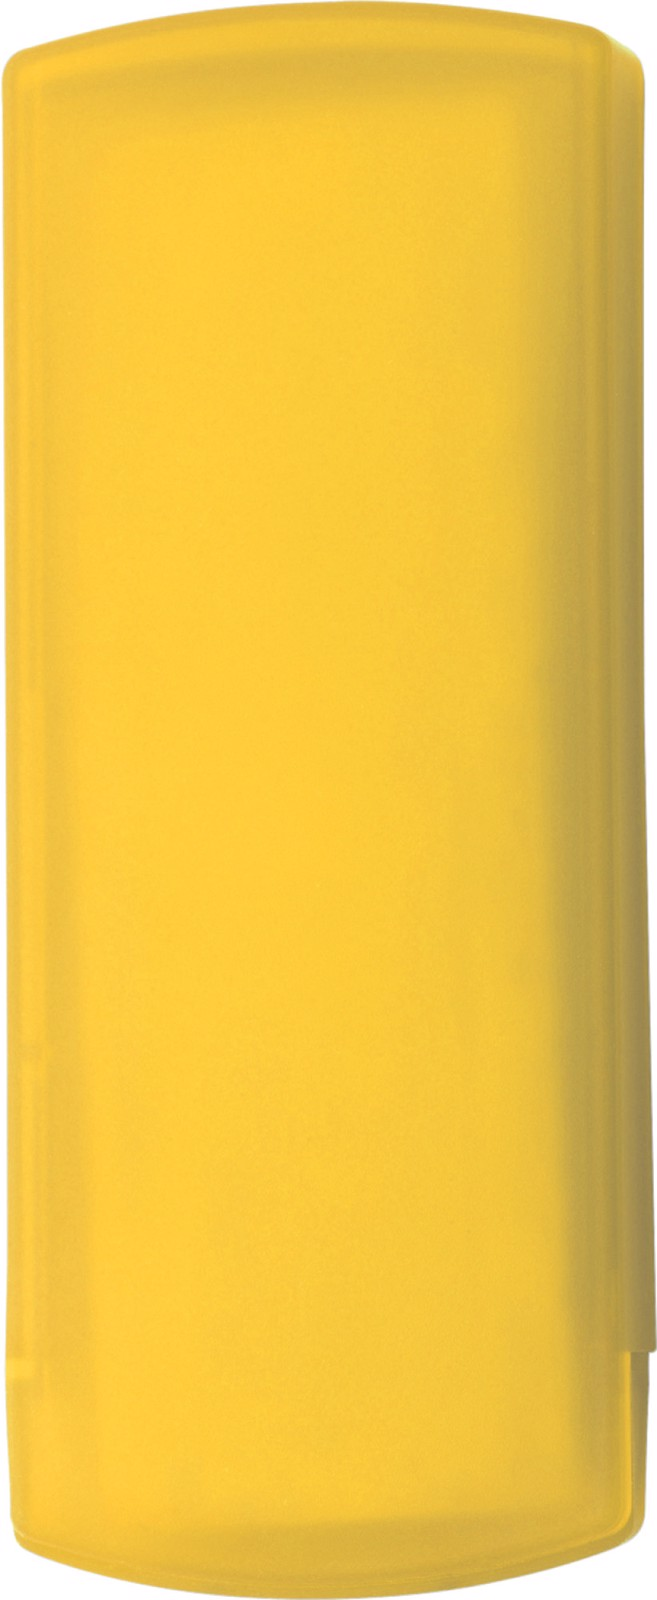 Plastic case with plasters - Yellow